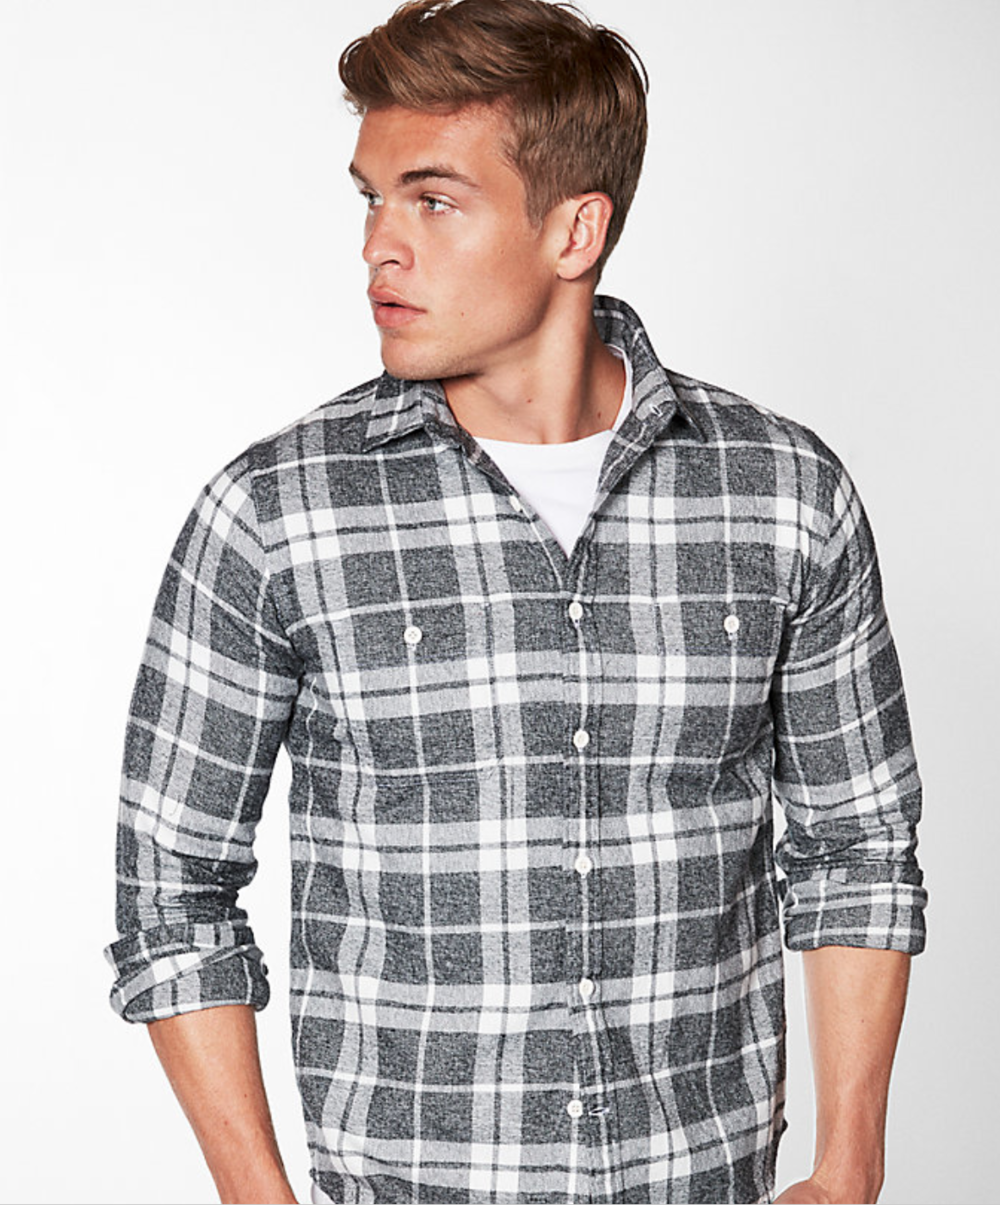 Plaid Cotton Flannel Shirt, Size: Small, Color: Gray